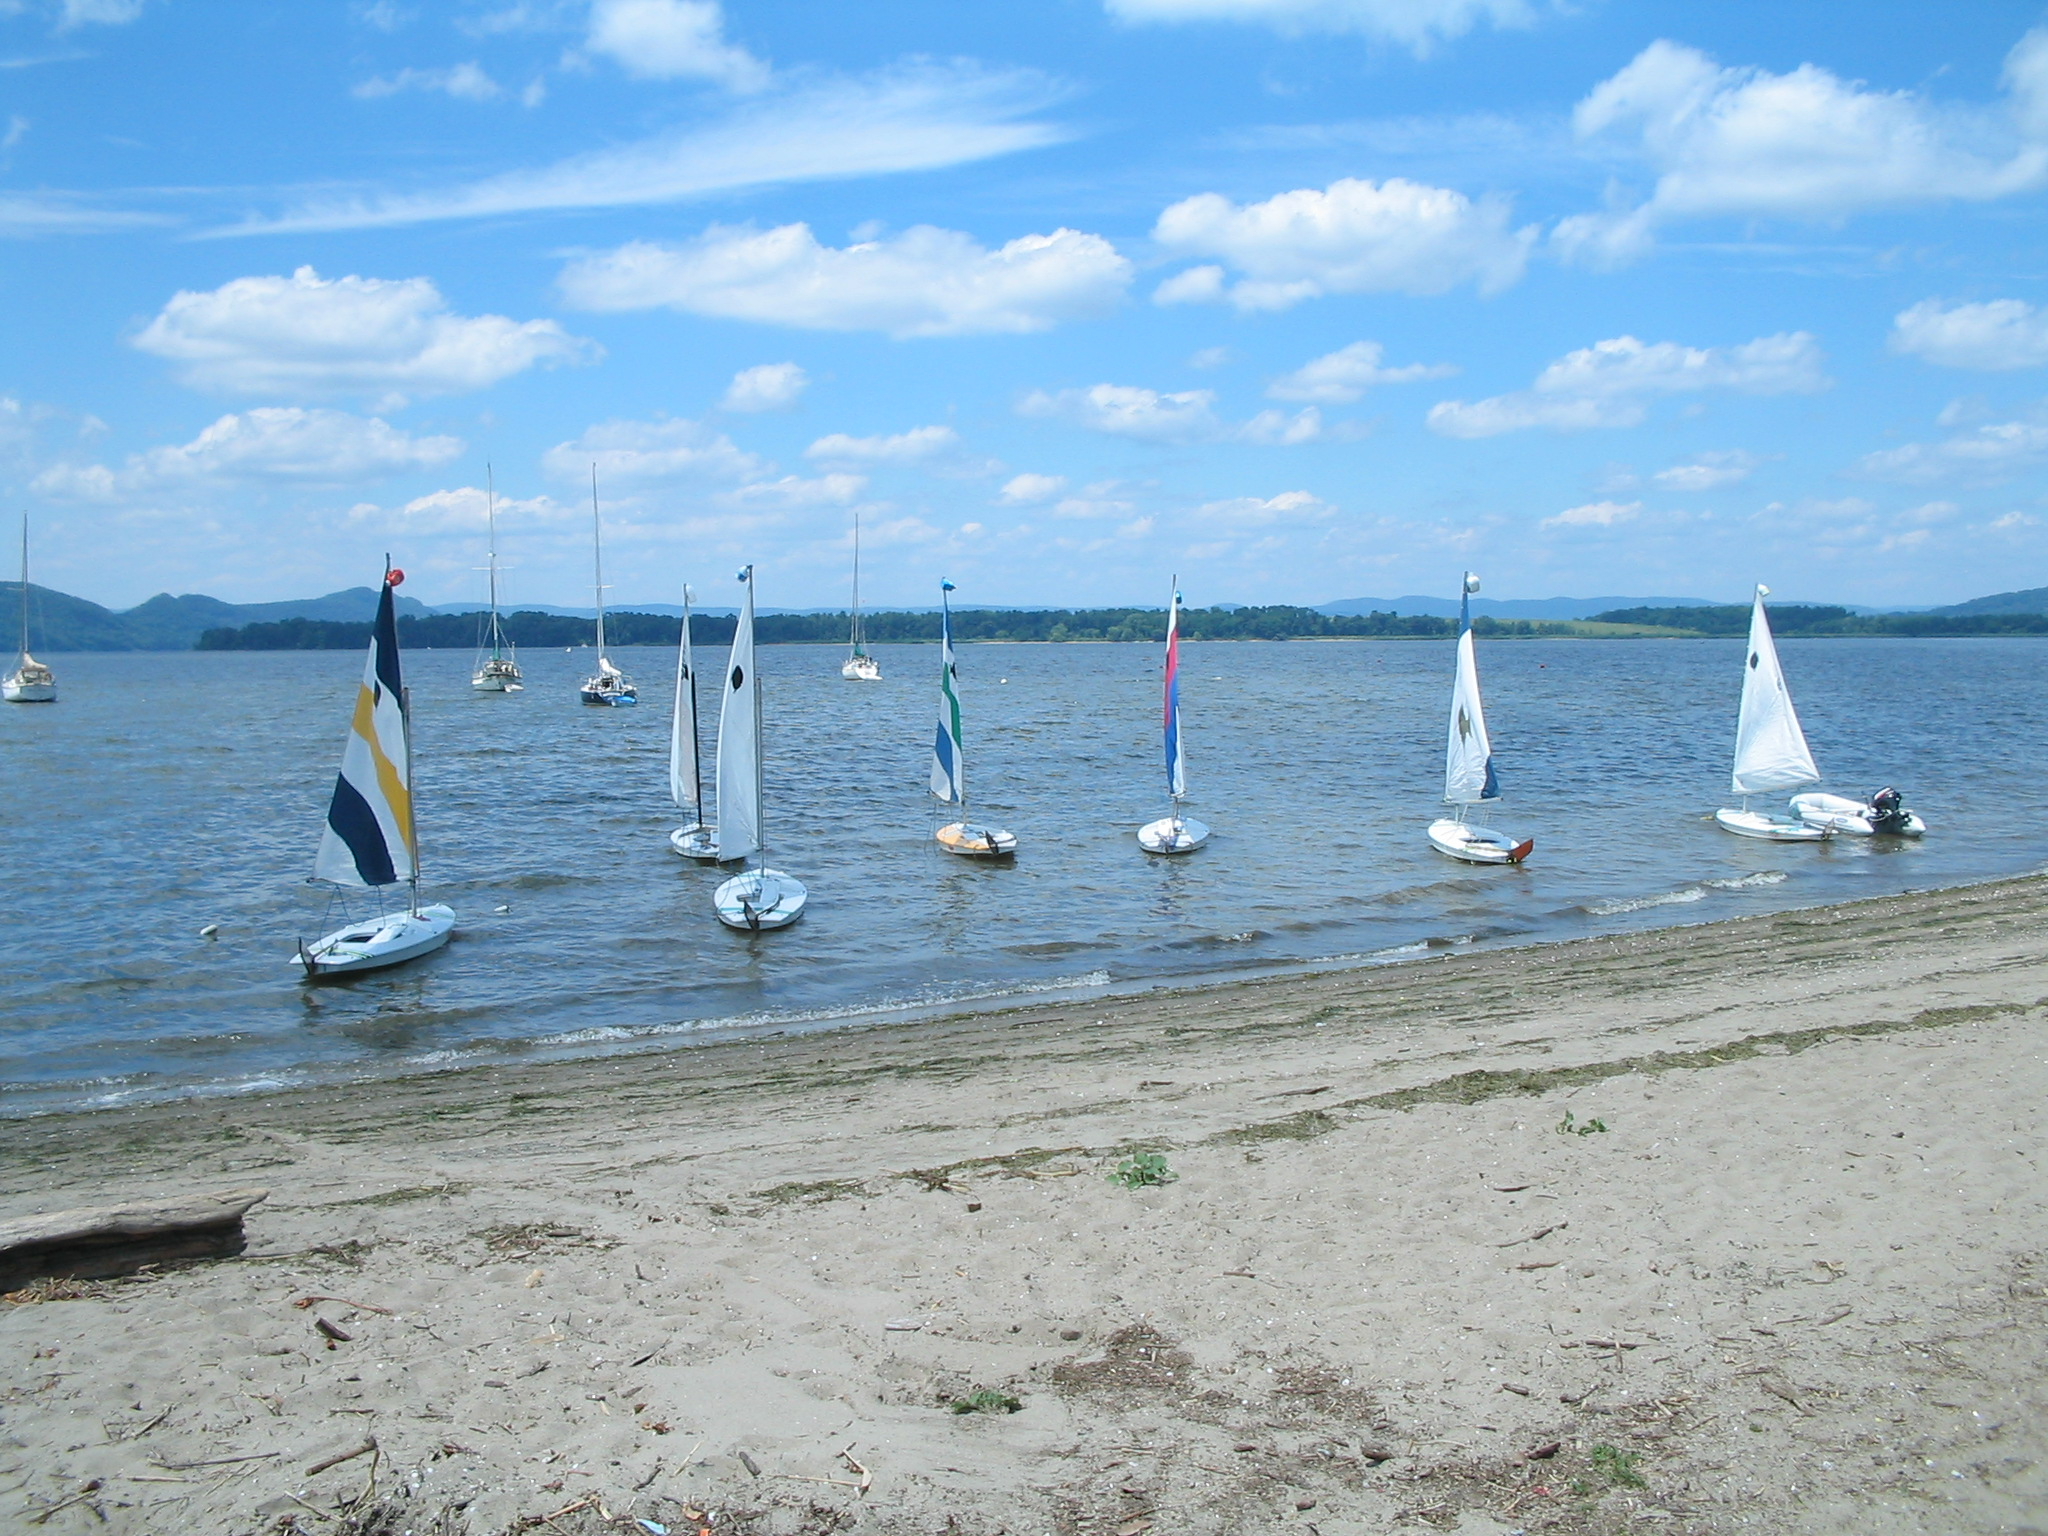 Shattemuc Beach with sailboats